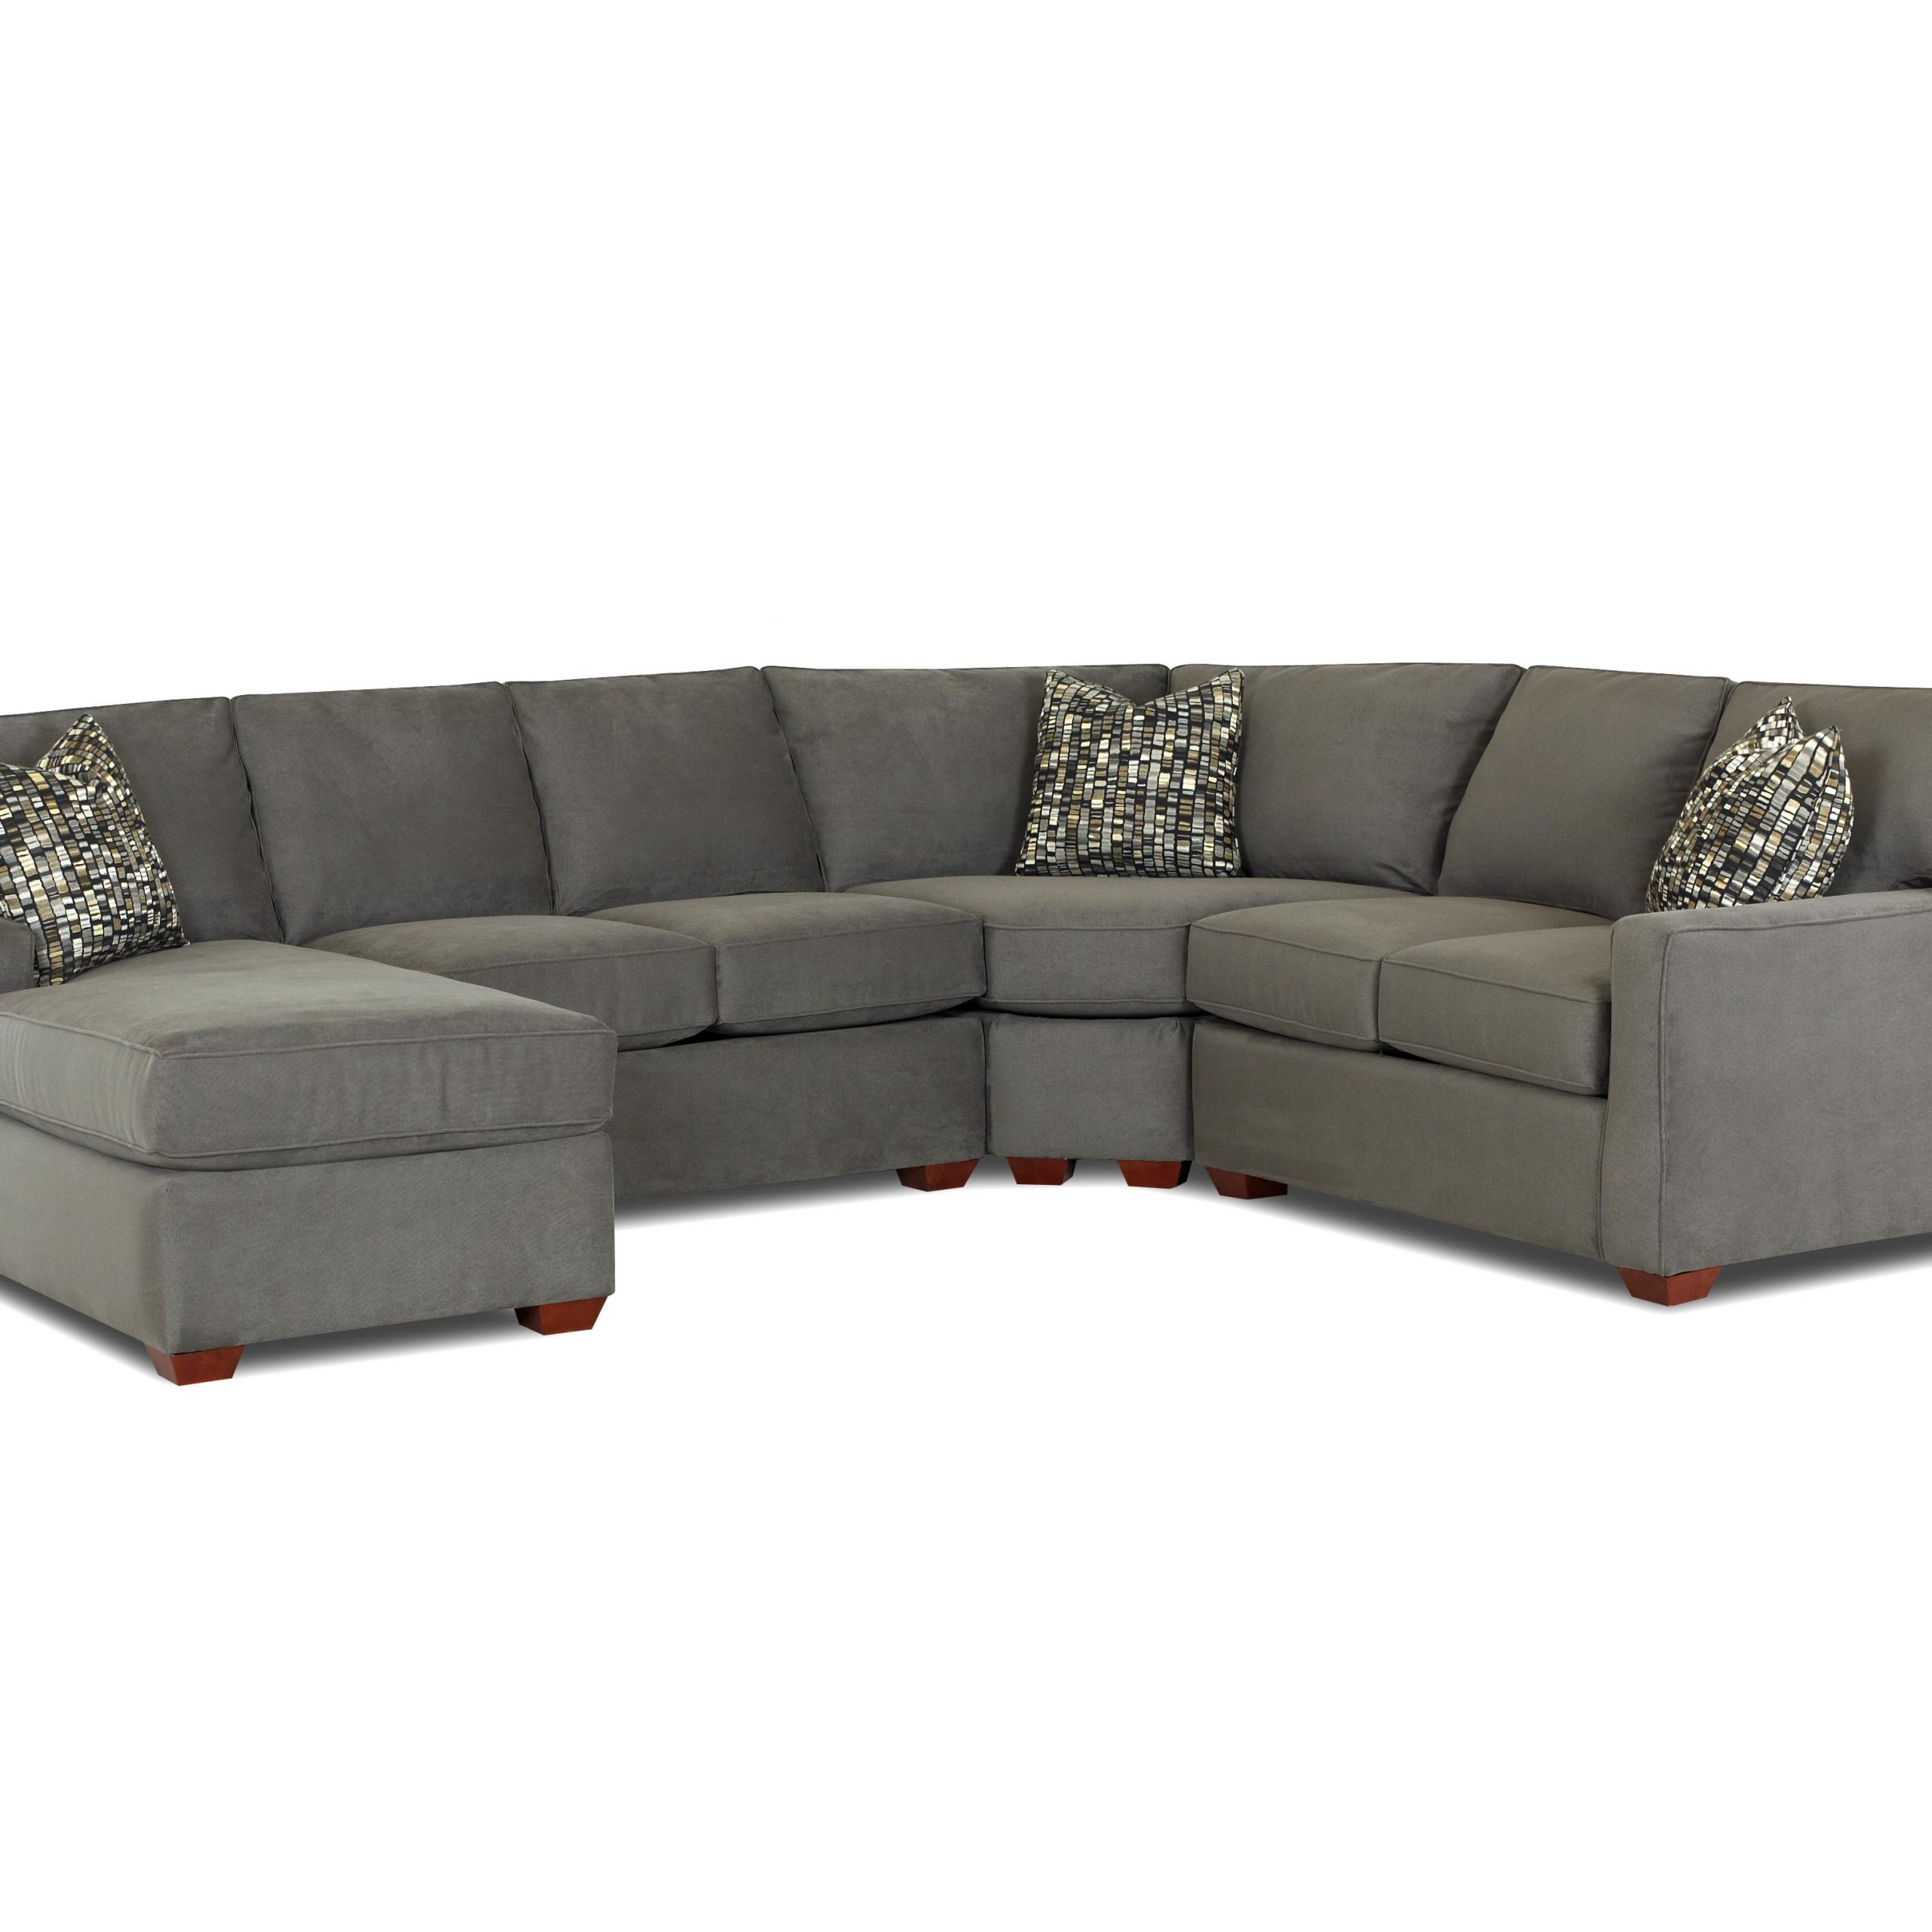 Famous Contemporary L Shaped Sectional Sofa With Right Arm Facing With Copenhagen Reclining Sectional Sofas With Right Storage Chaise (View 13 of 20)